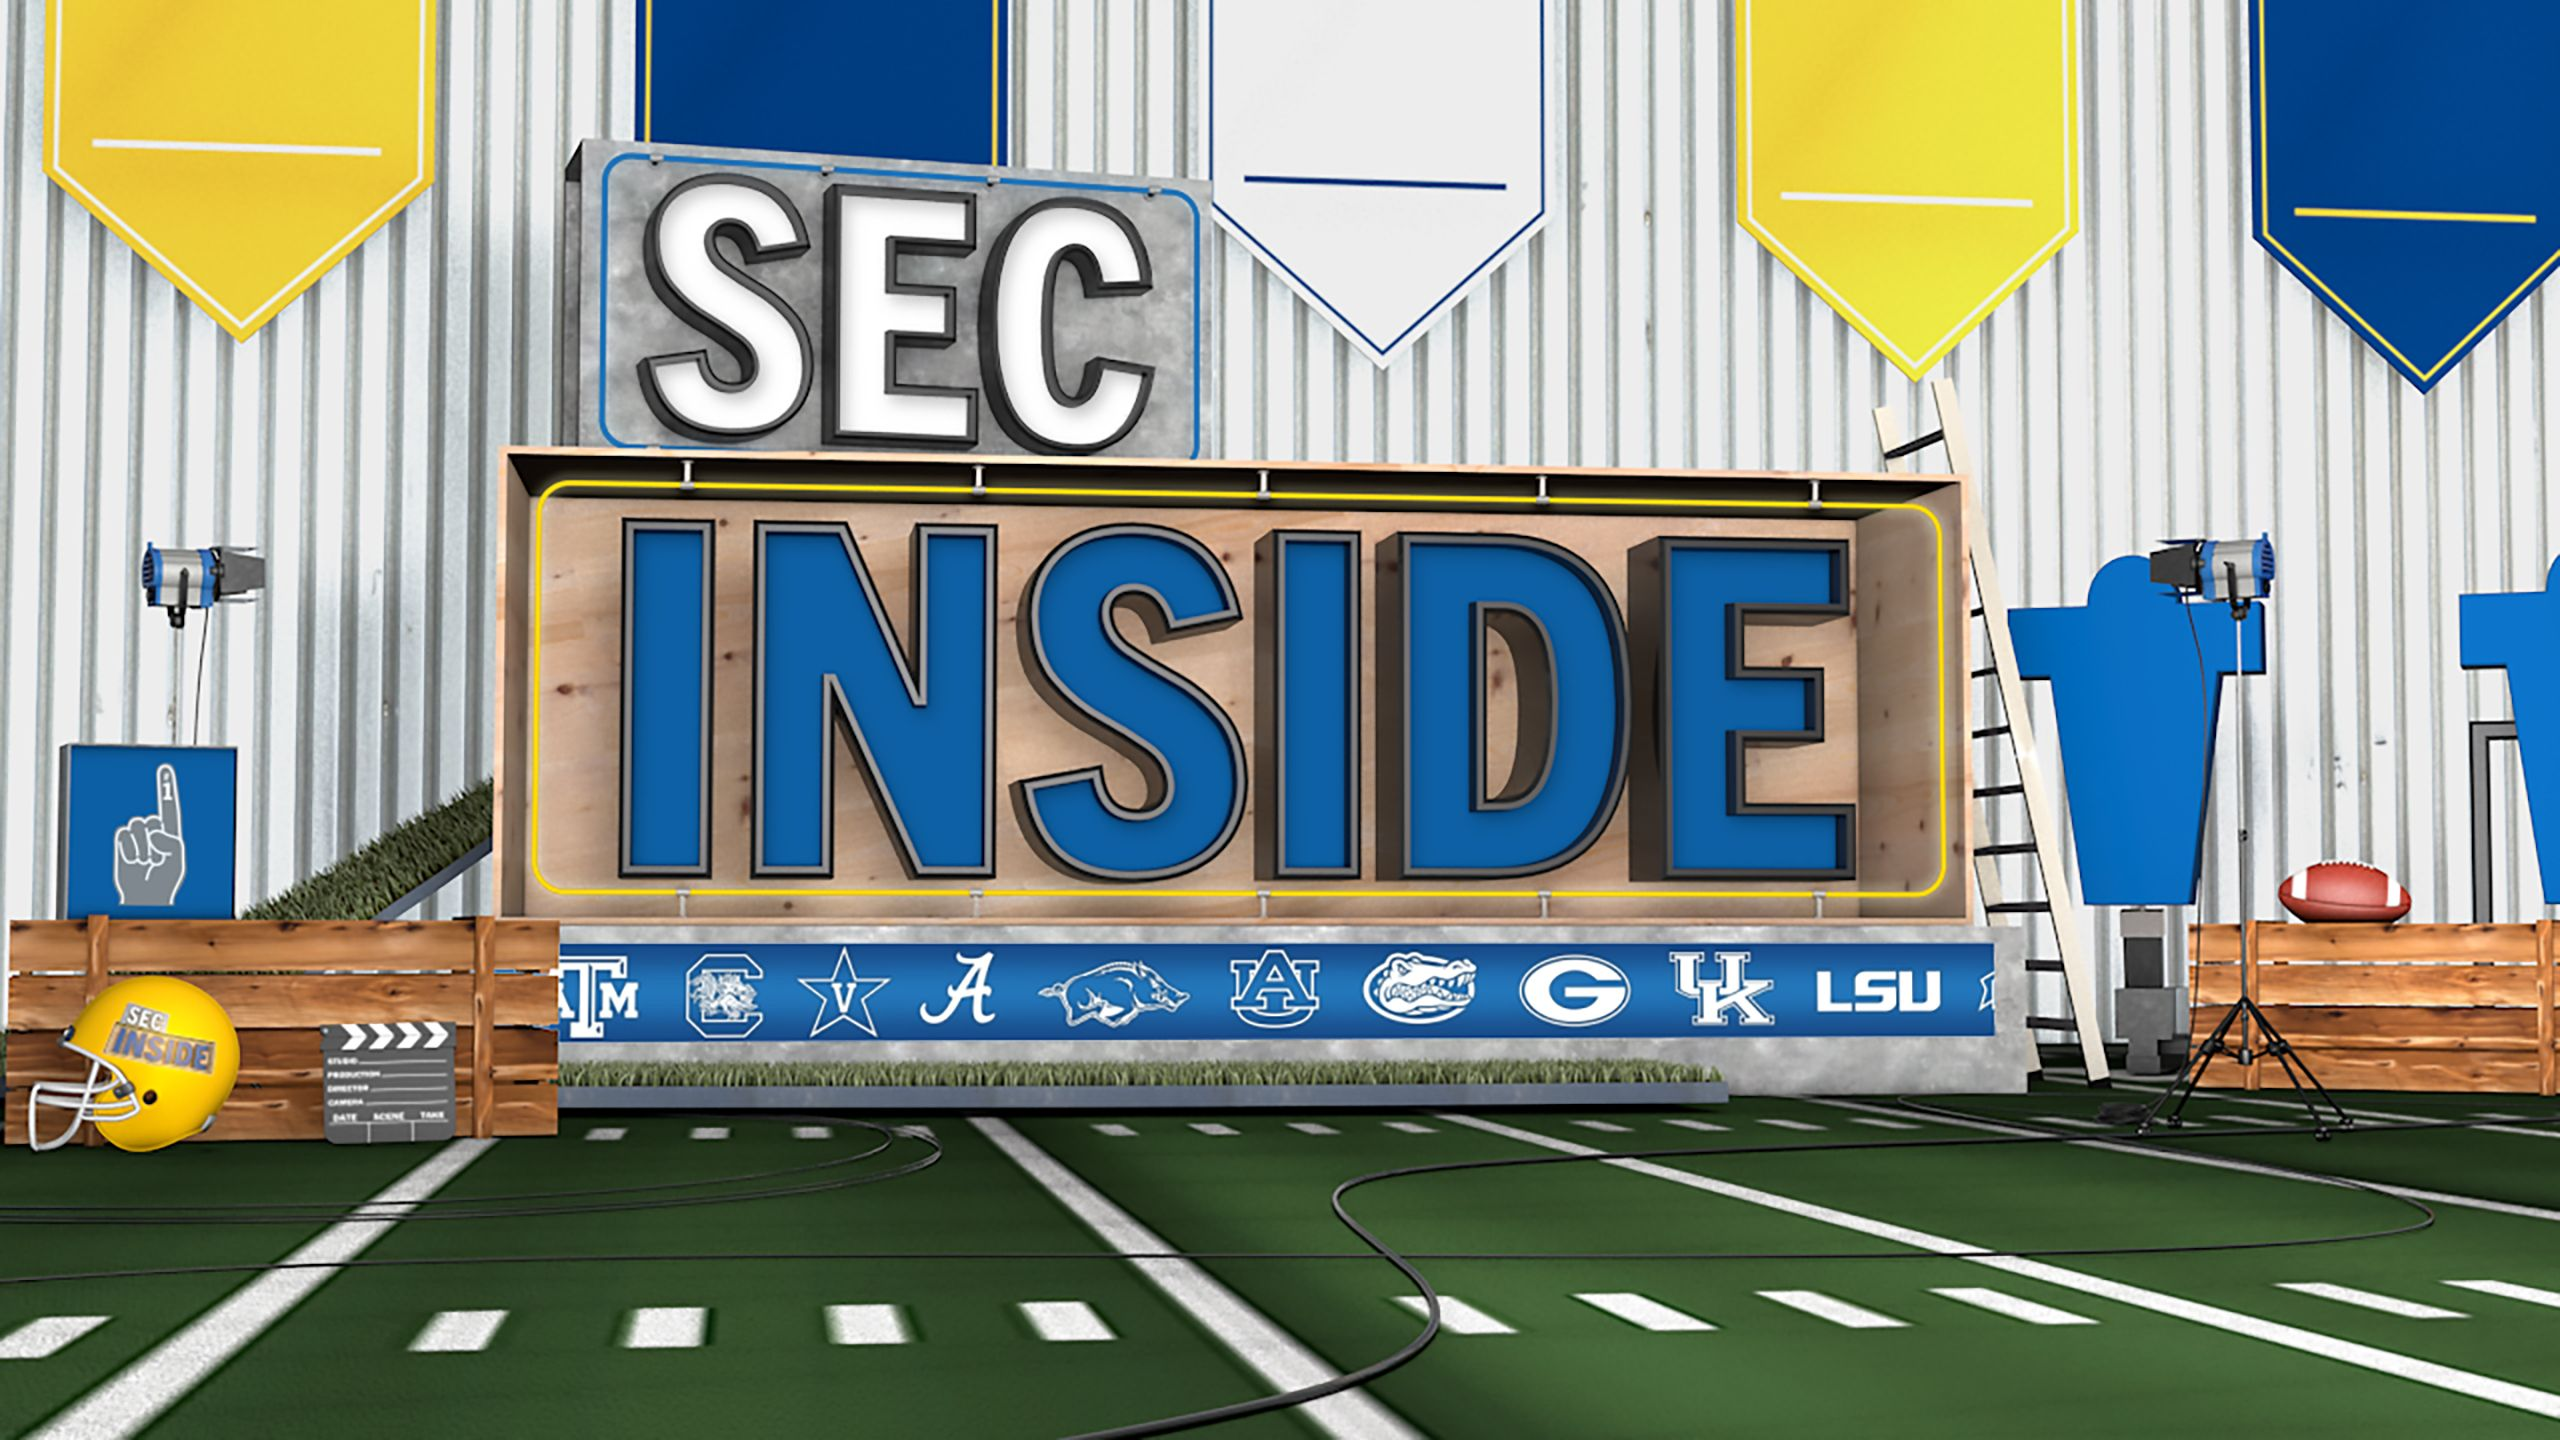 SEC Inside: Michigan vs. Florida Presented by Regions Bank